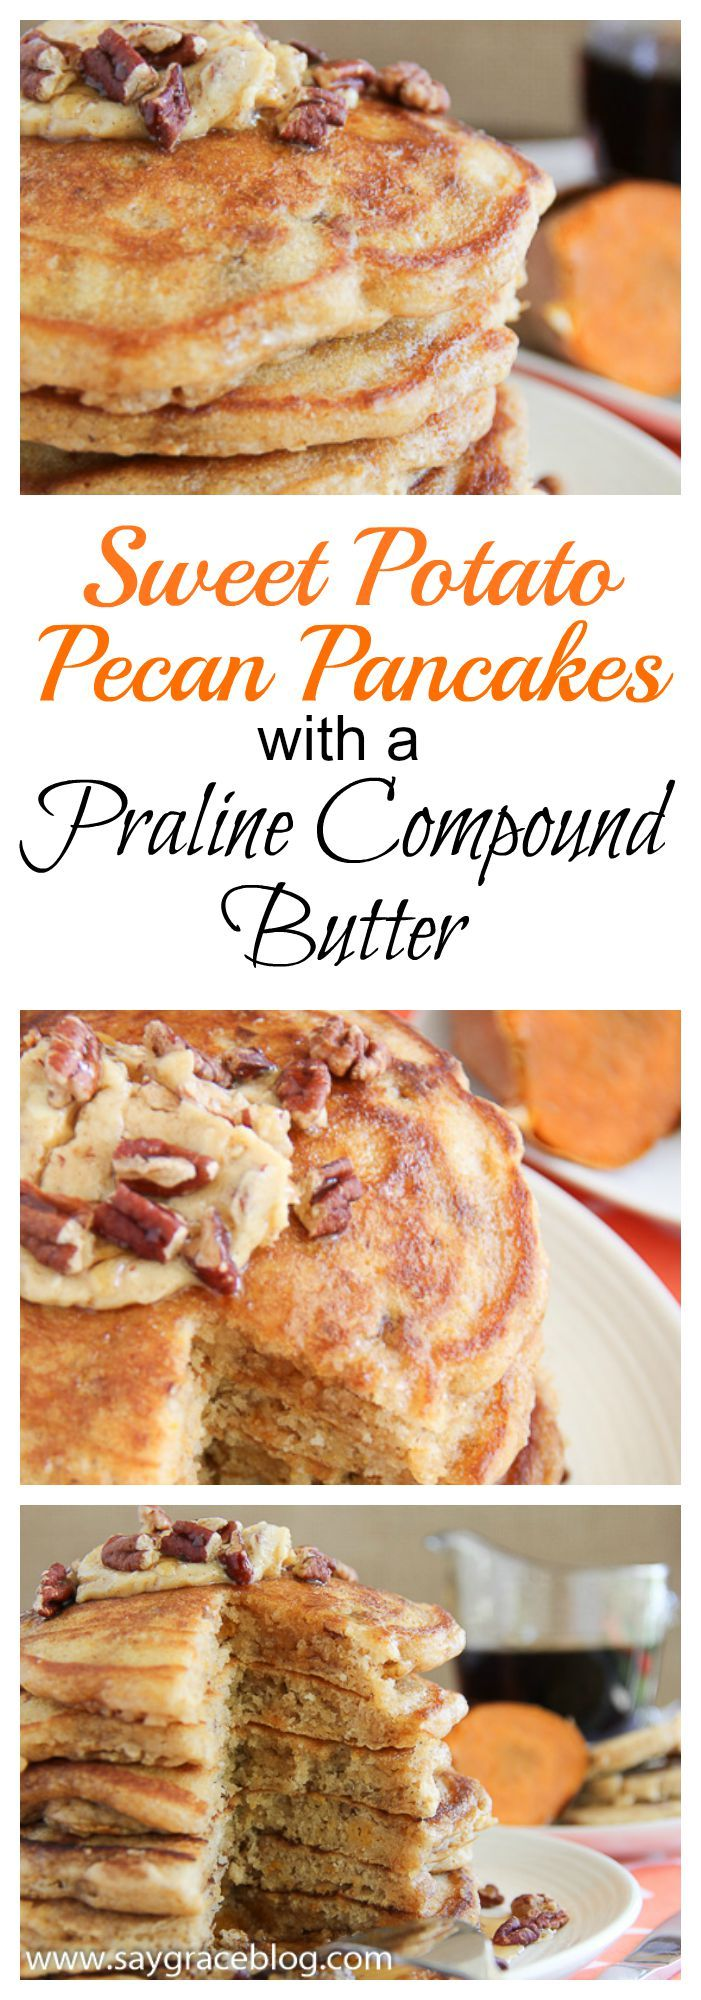 Soul Food Recipe | Light and fluffy sweet potato pancakes packed with toasted pecans and smeared with a delicious pecan praline compound butter.